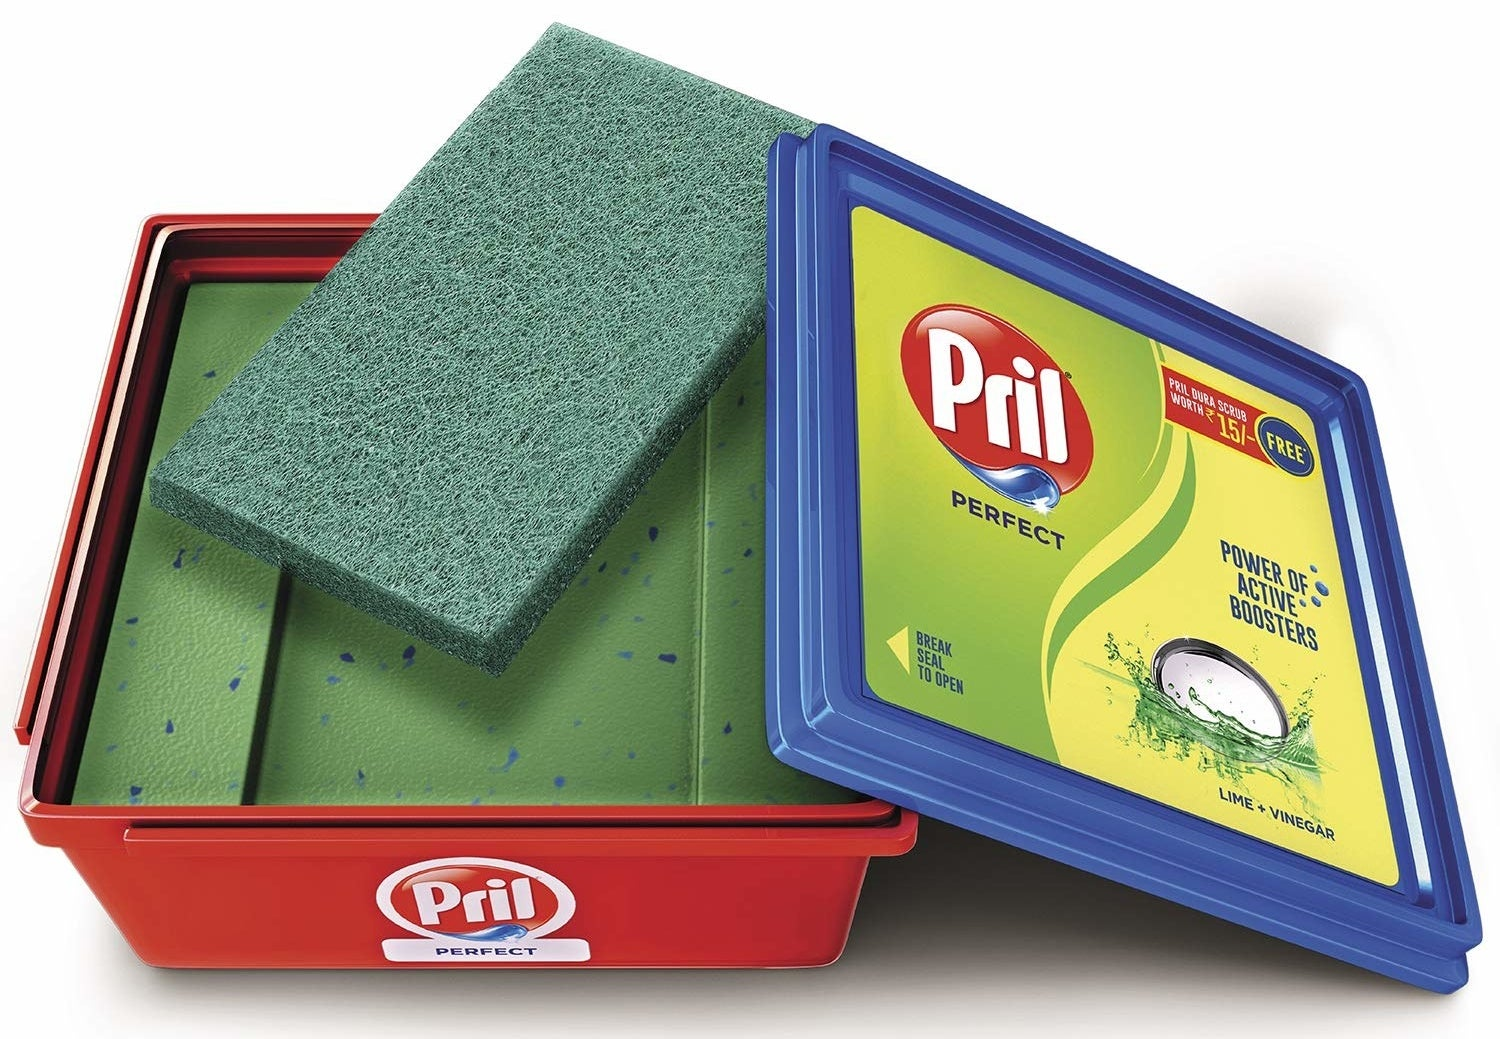 A Pril diswashing bar in a box with a cleaning scrub placed on top.